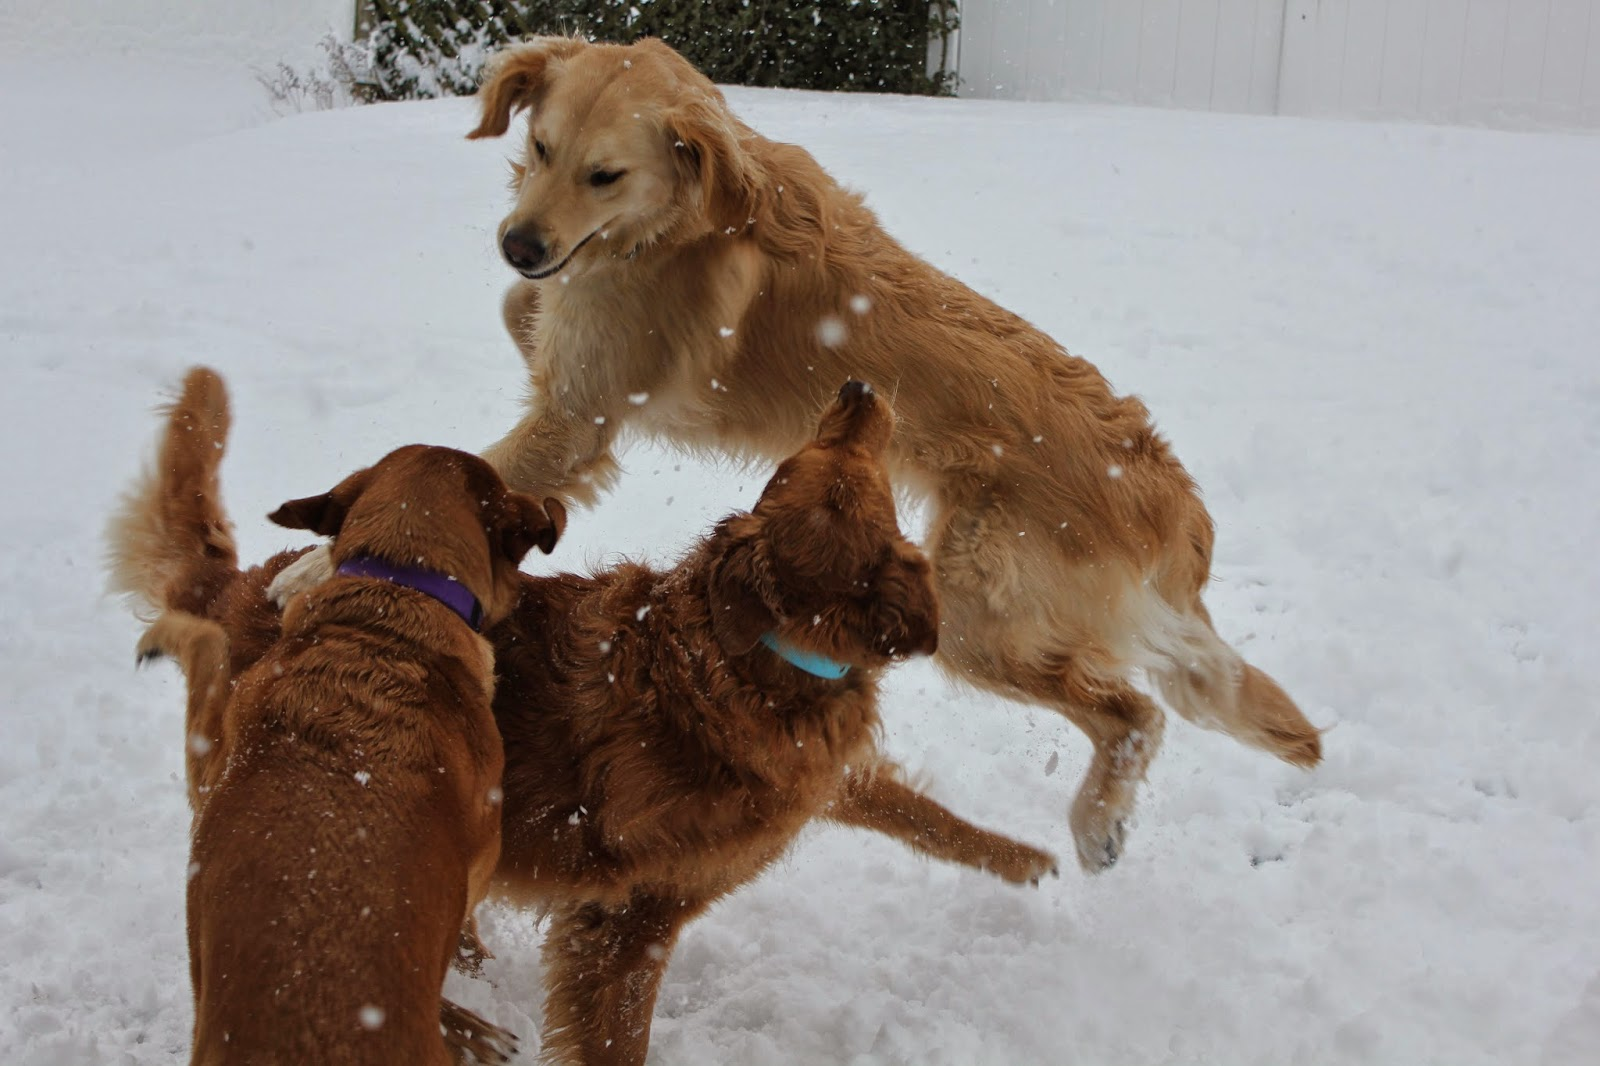 dogs horsing around in snow